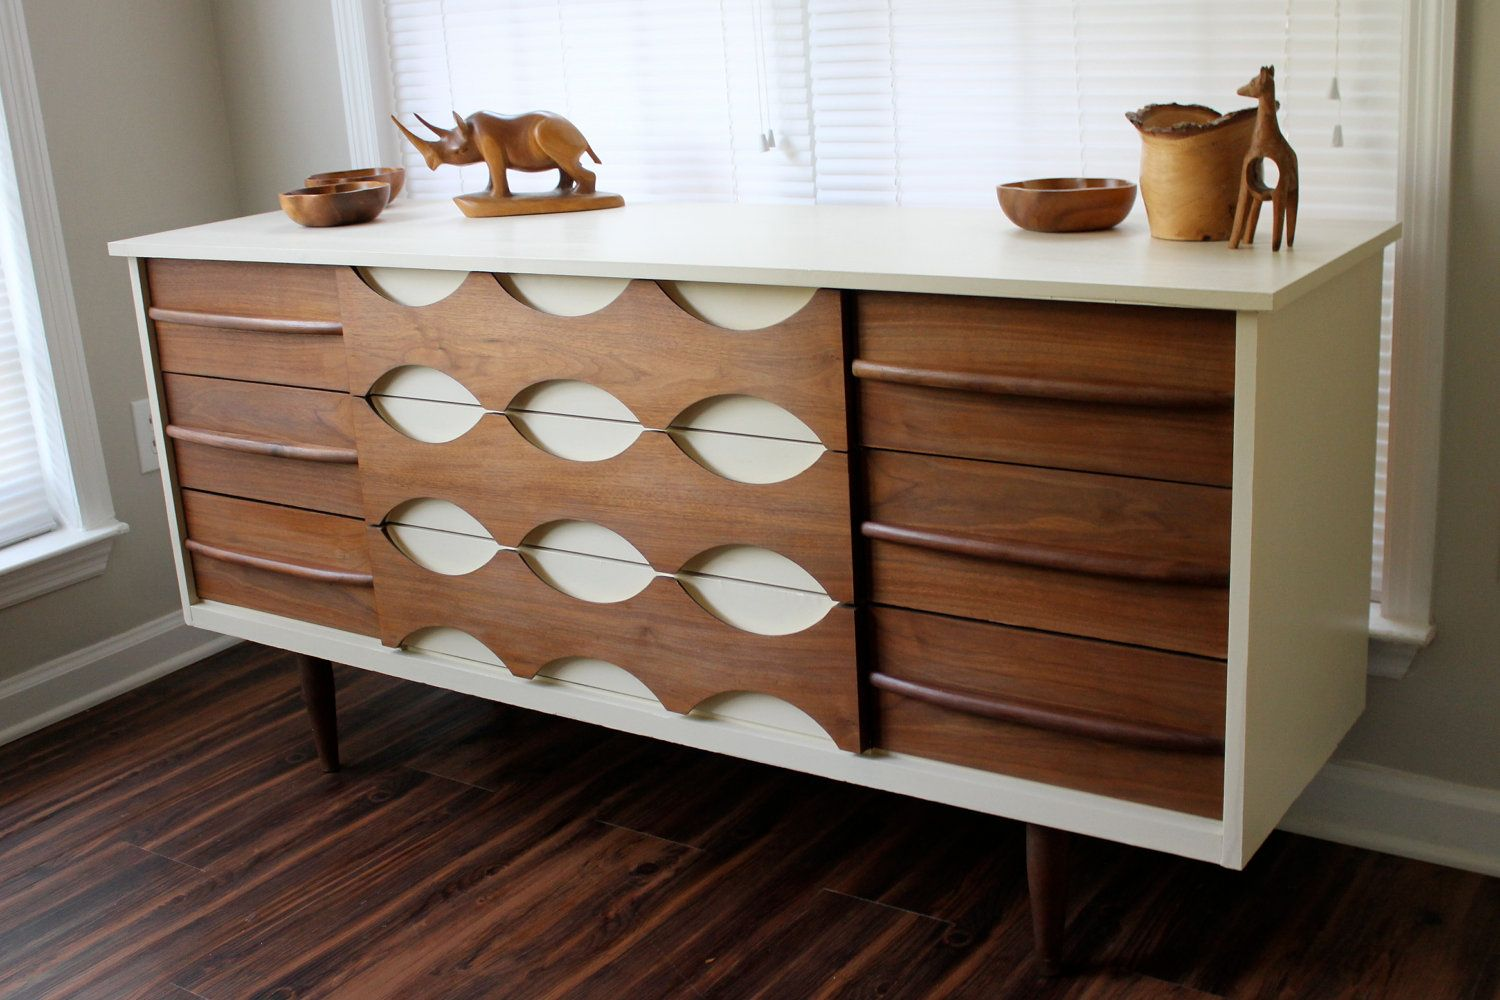 ^ 1000+ images about Mid-century modern painted furniture on ...